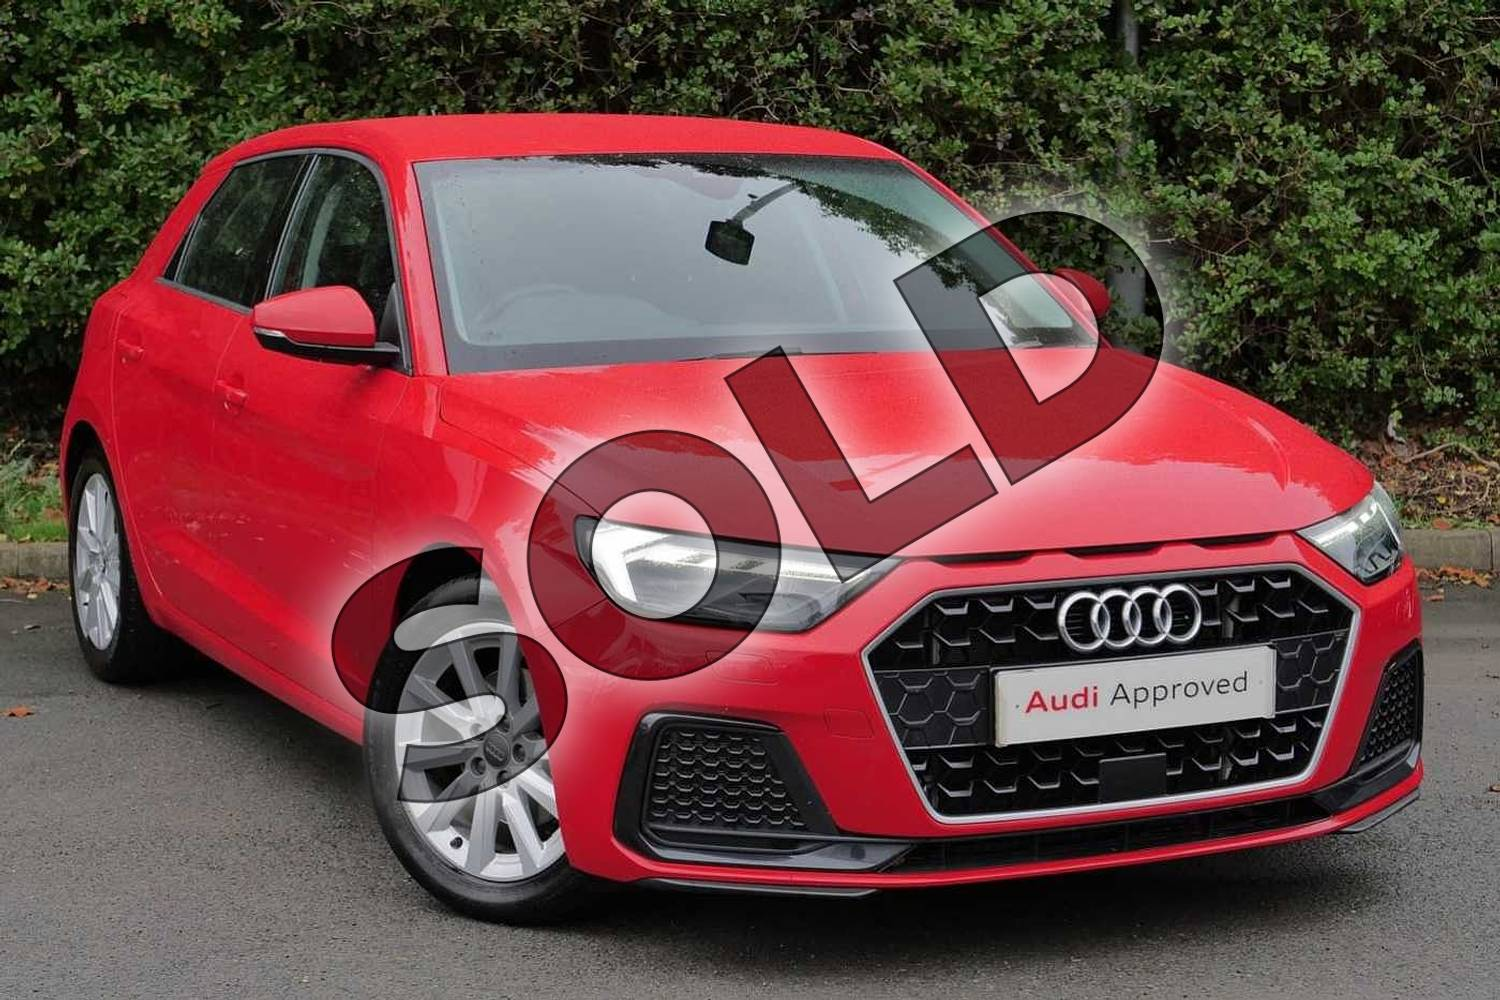 2018 Audi A1 Sportback 30 TFSI Sport 5dr in Misano Red Pearlescent at Worcester Audi